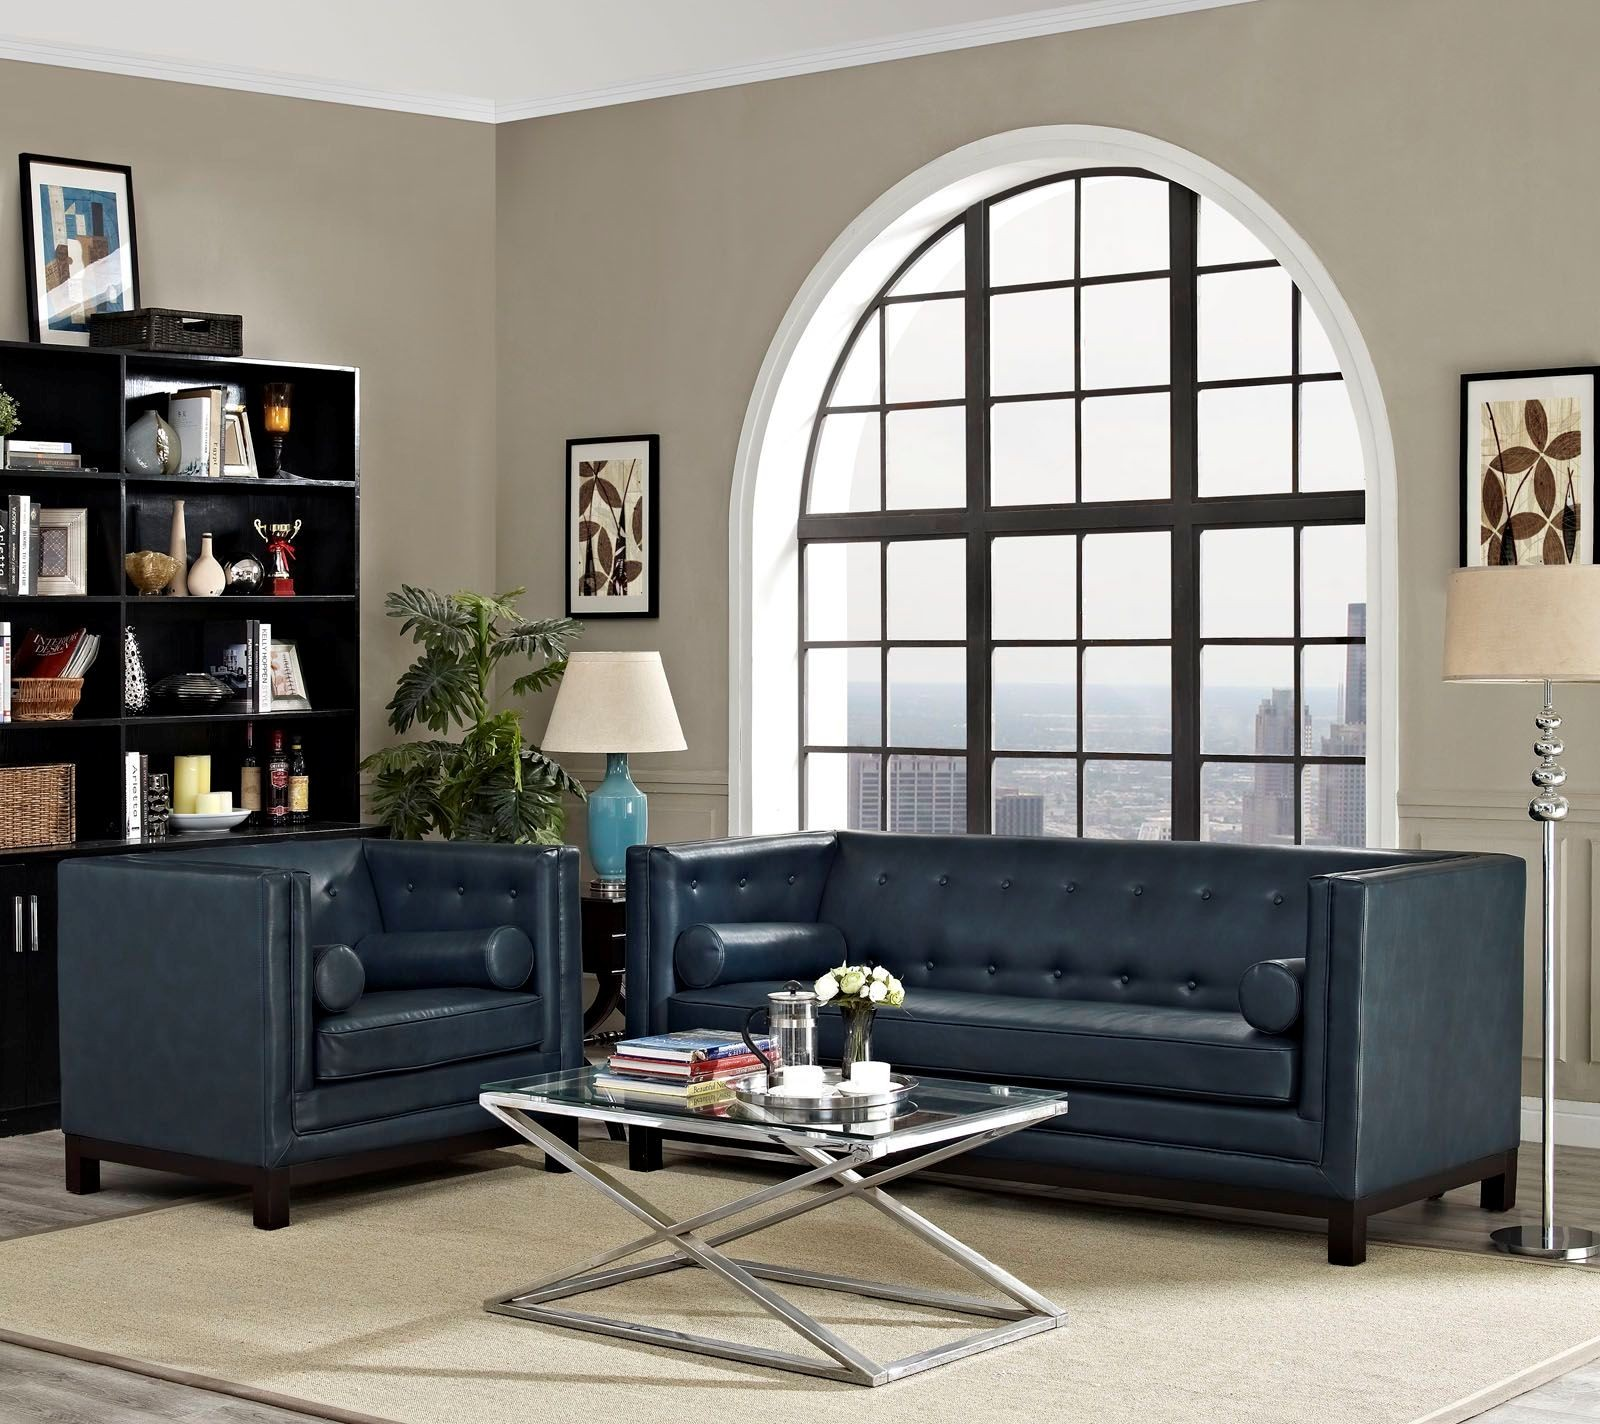 Imperial blue 2 piece living room set eei 1781 blu set for 2 piece living room furniture set